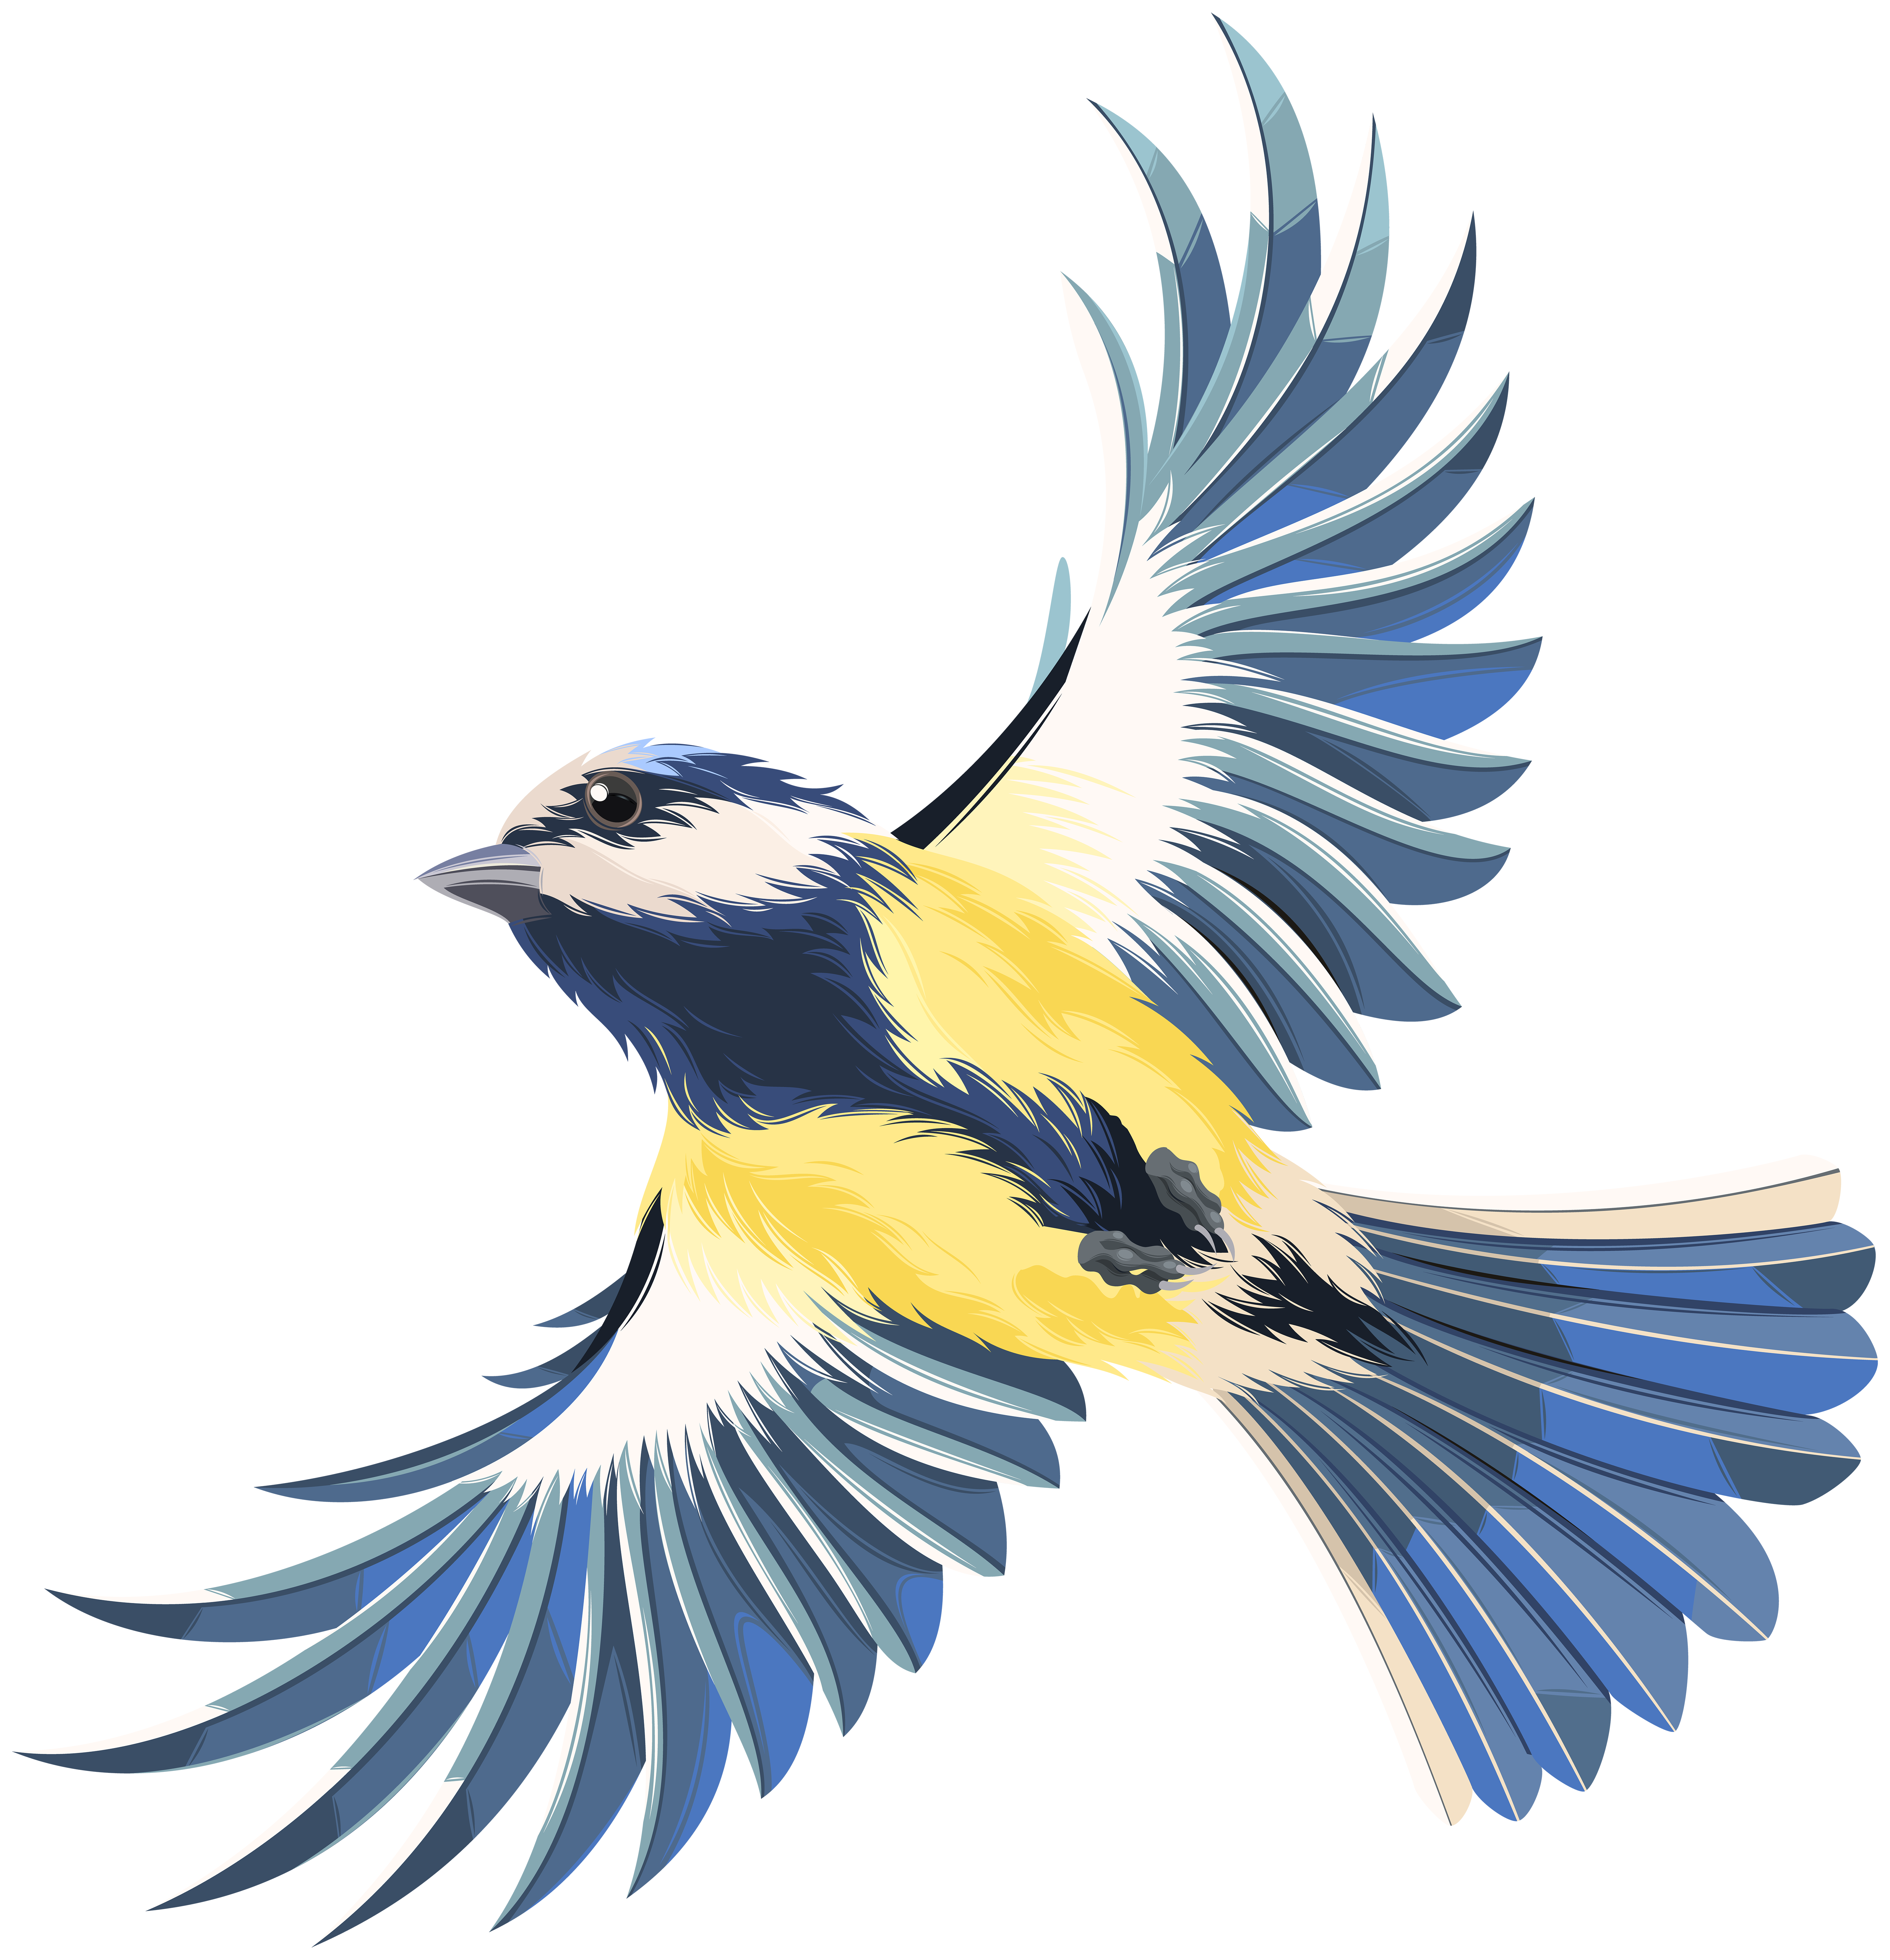 Fly clipart summer. Flying bird transparent png